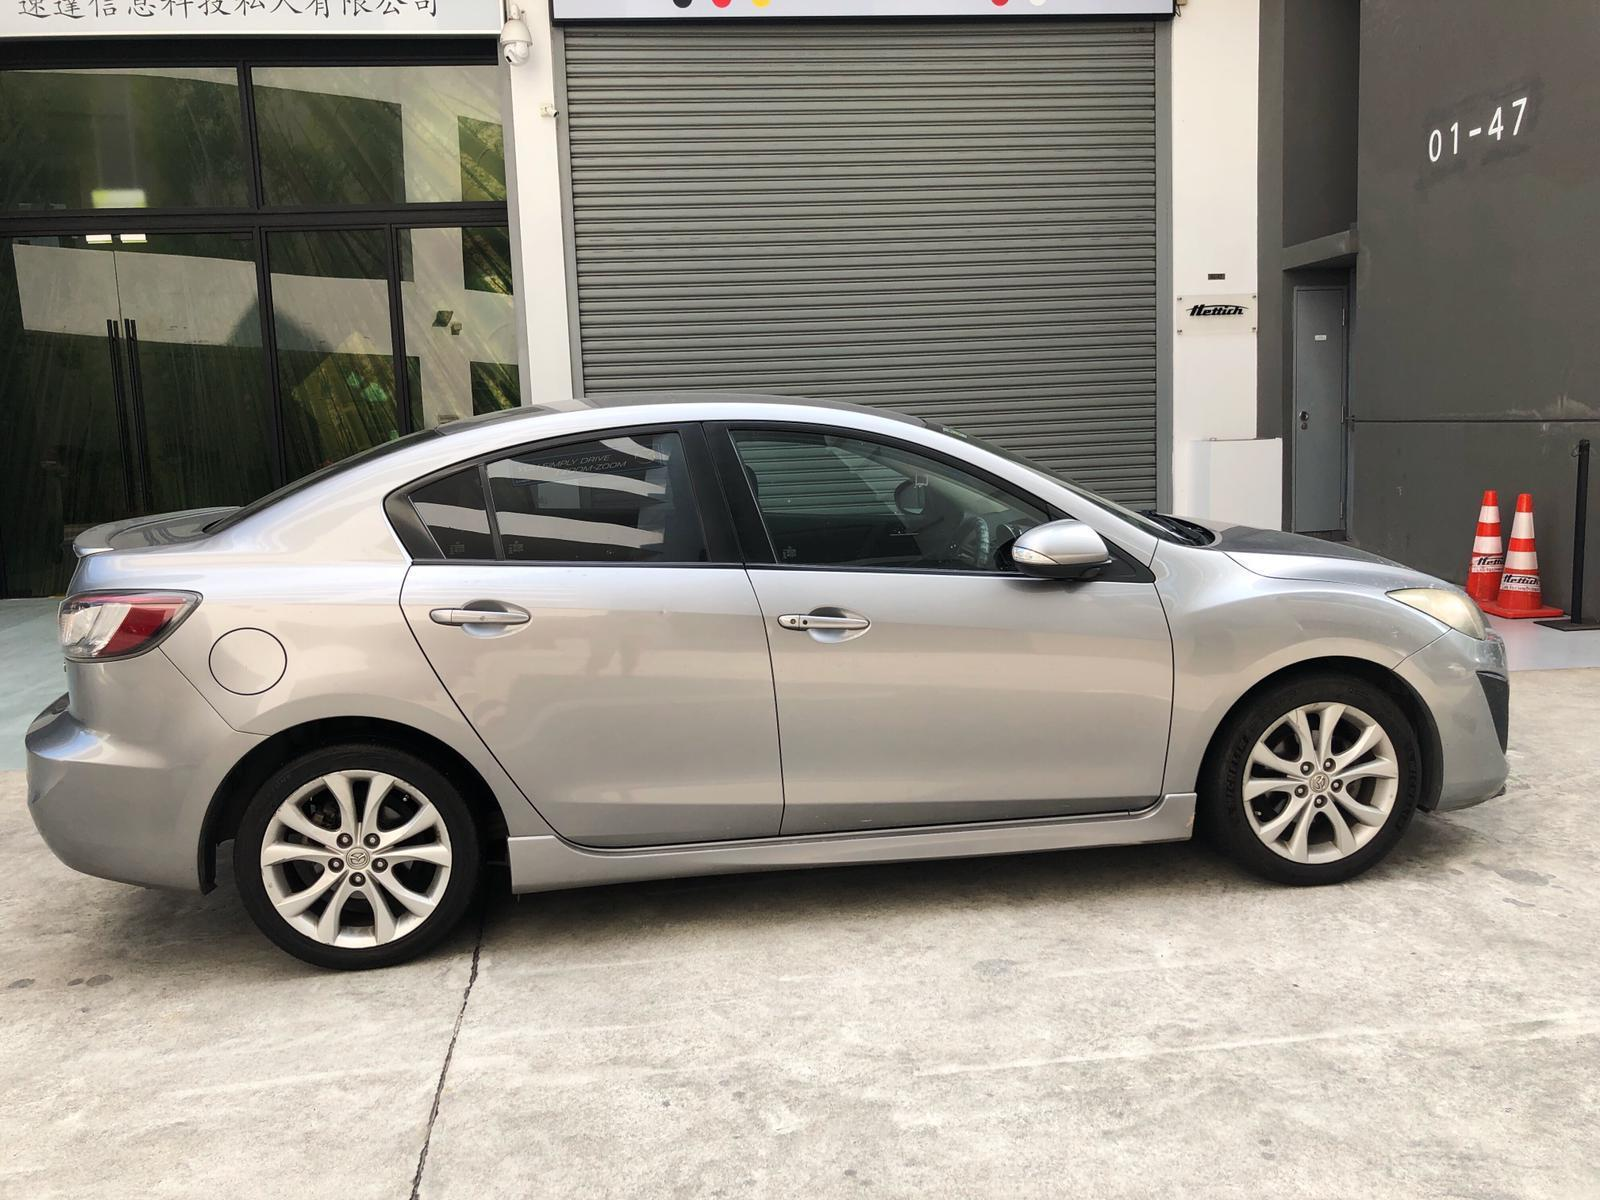 Mazda 3 2.0A Cheap rental for PHV Use Grab GoJek Ryde or Personal use